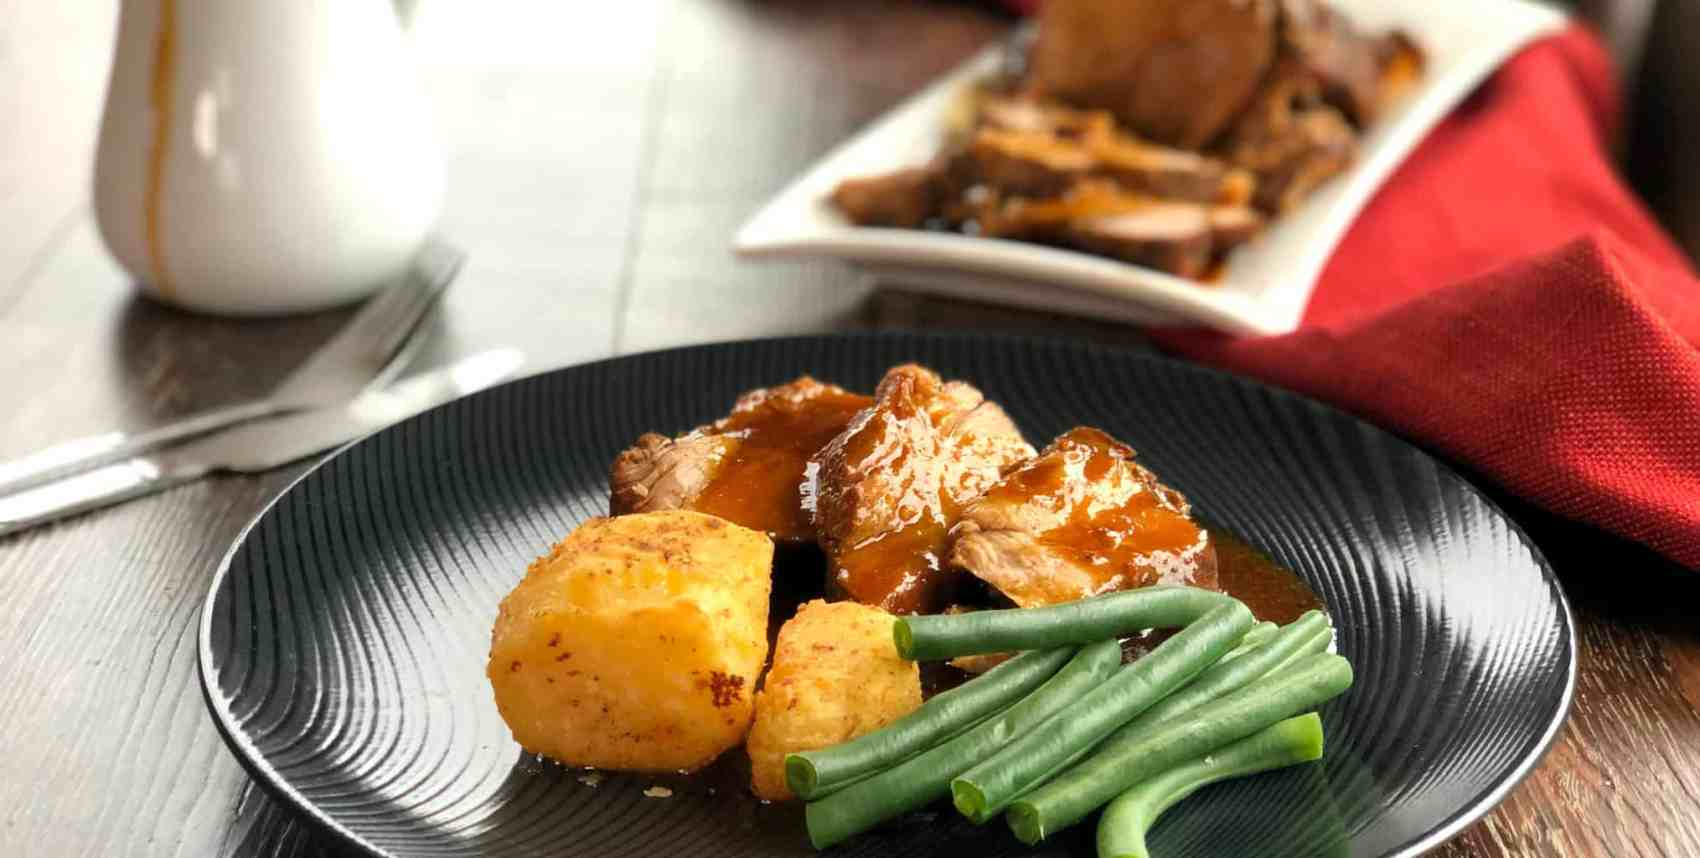 Roast Pork Dinner with Roast Potatoes and Green Beans